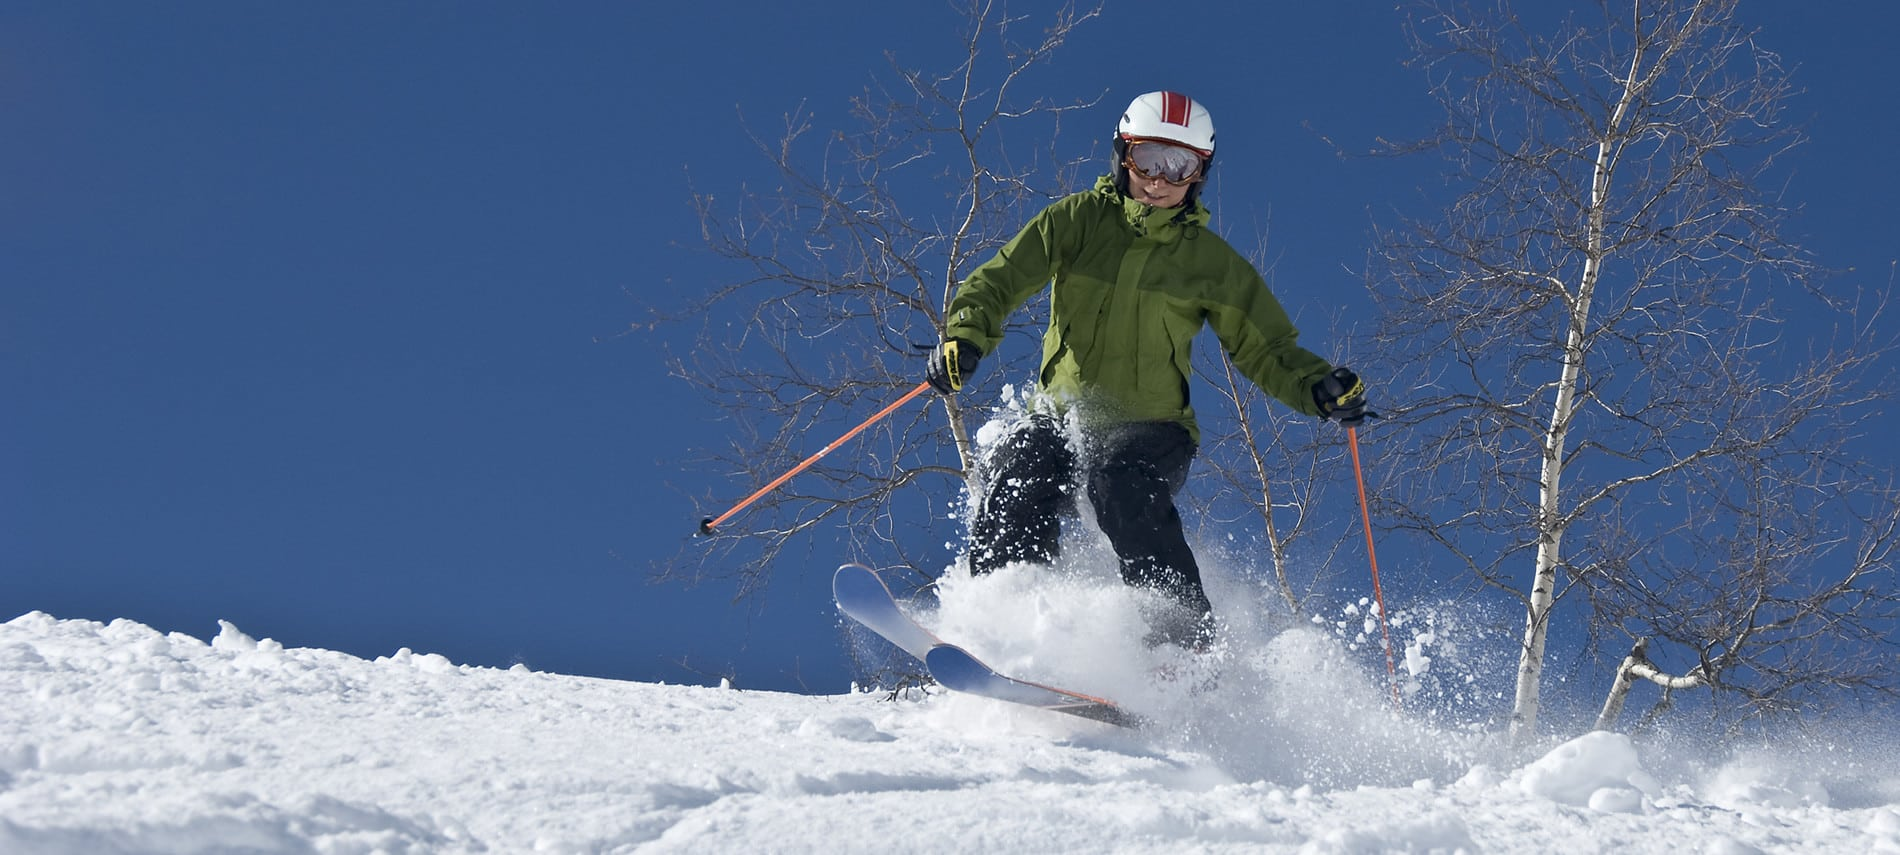 Person snow skiing down hill amidst crisp blue skies